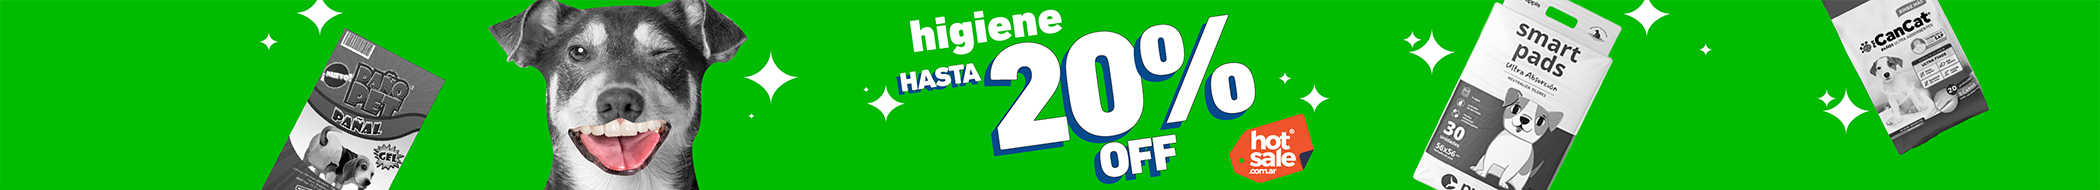 Hot sale Header Categoria Higiene Perro